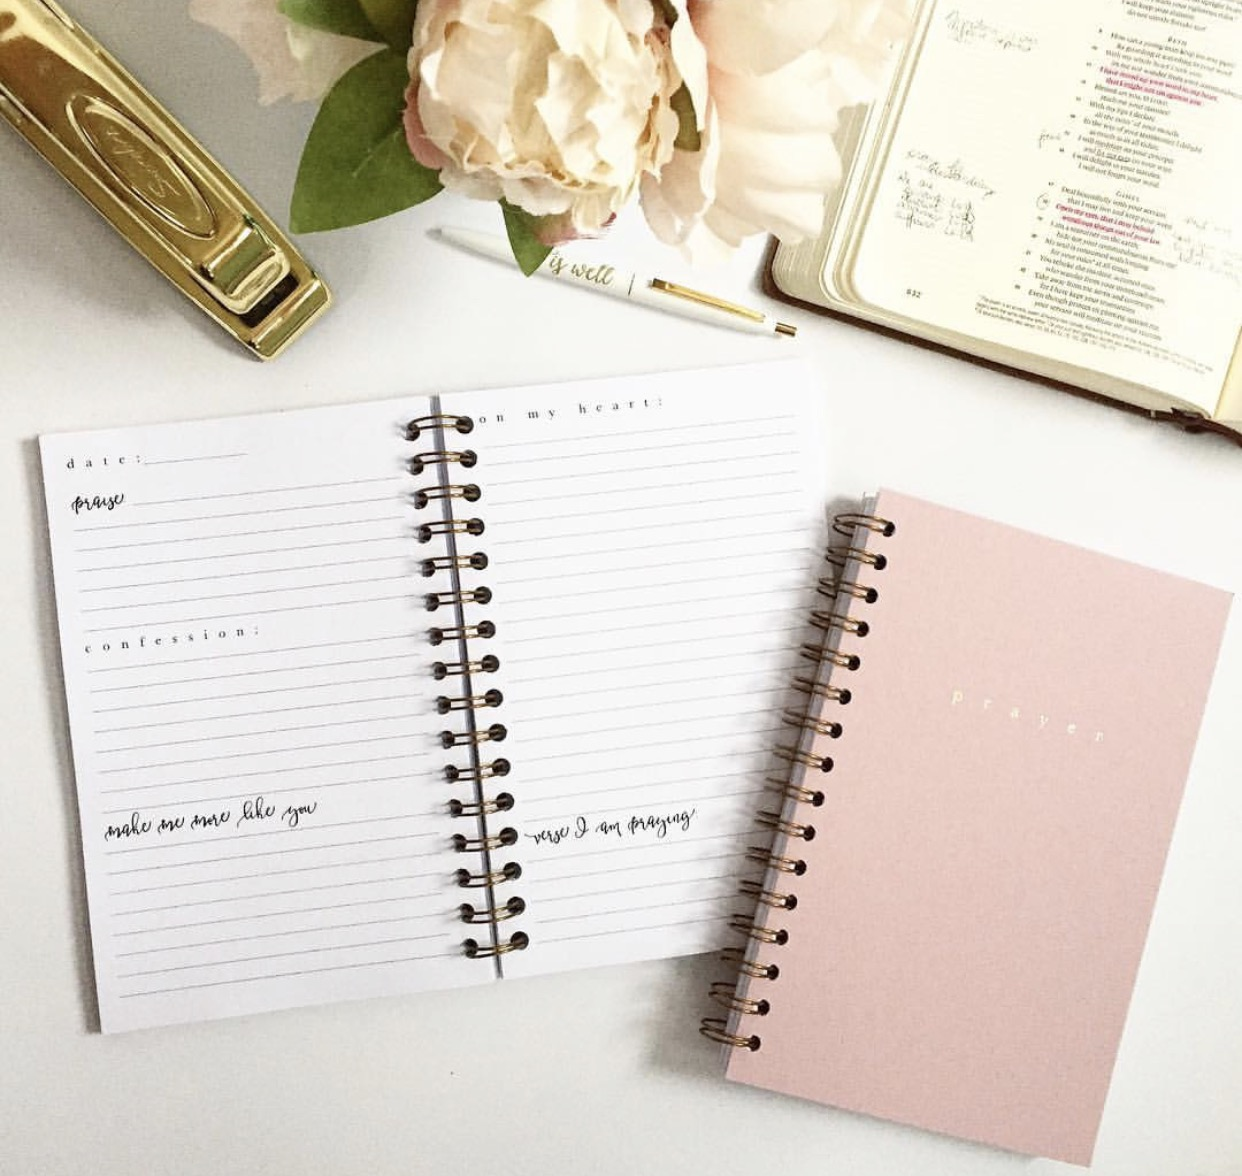 Check out the new prayer journal in the VGC shop if you want to get start putting some of these tips into action, and spending one on one time with God every day! It has sections for Praise, Confessions, Applications, Prayers, and a Verse for each day...